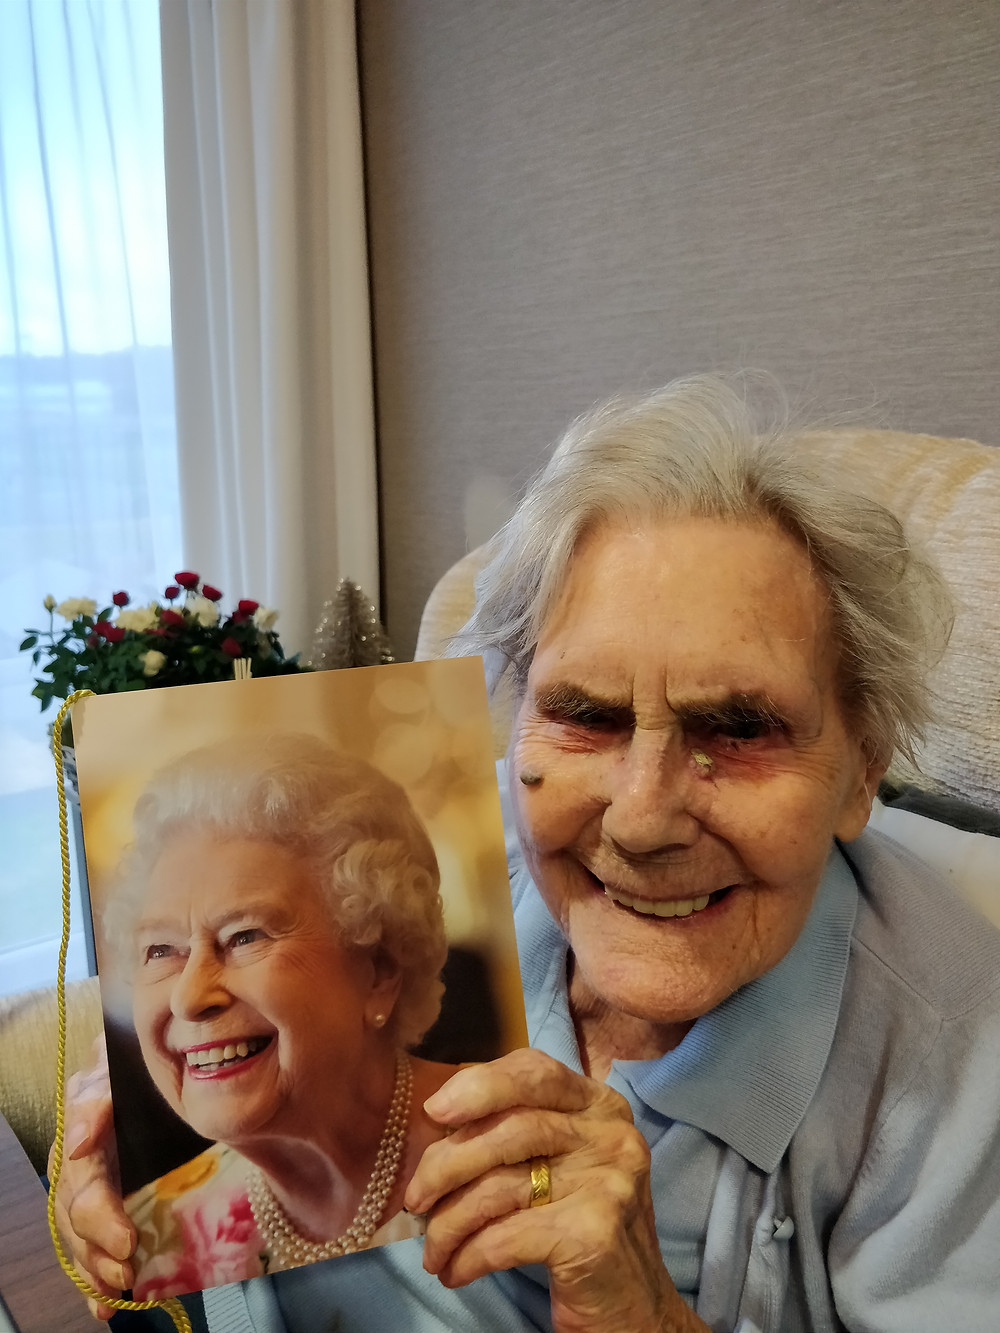 Celebrating 100 year birthday with card from the Queen